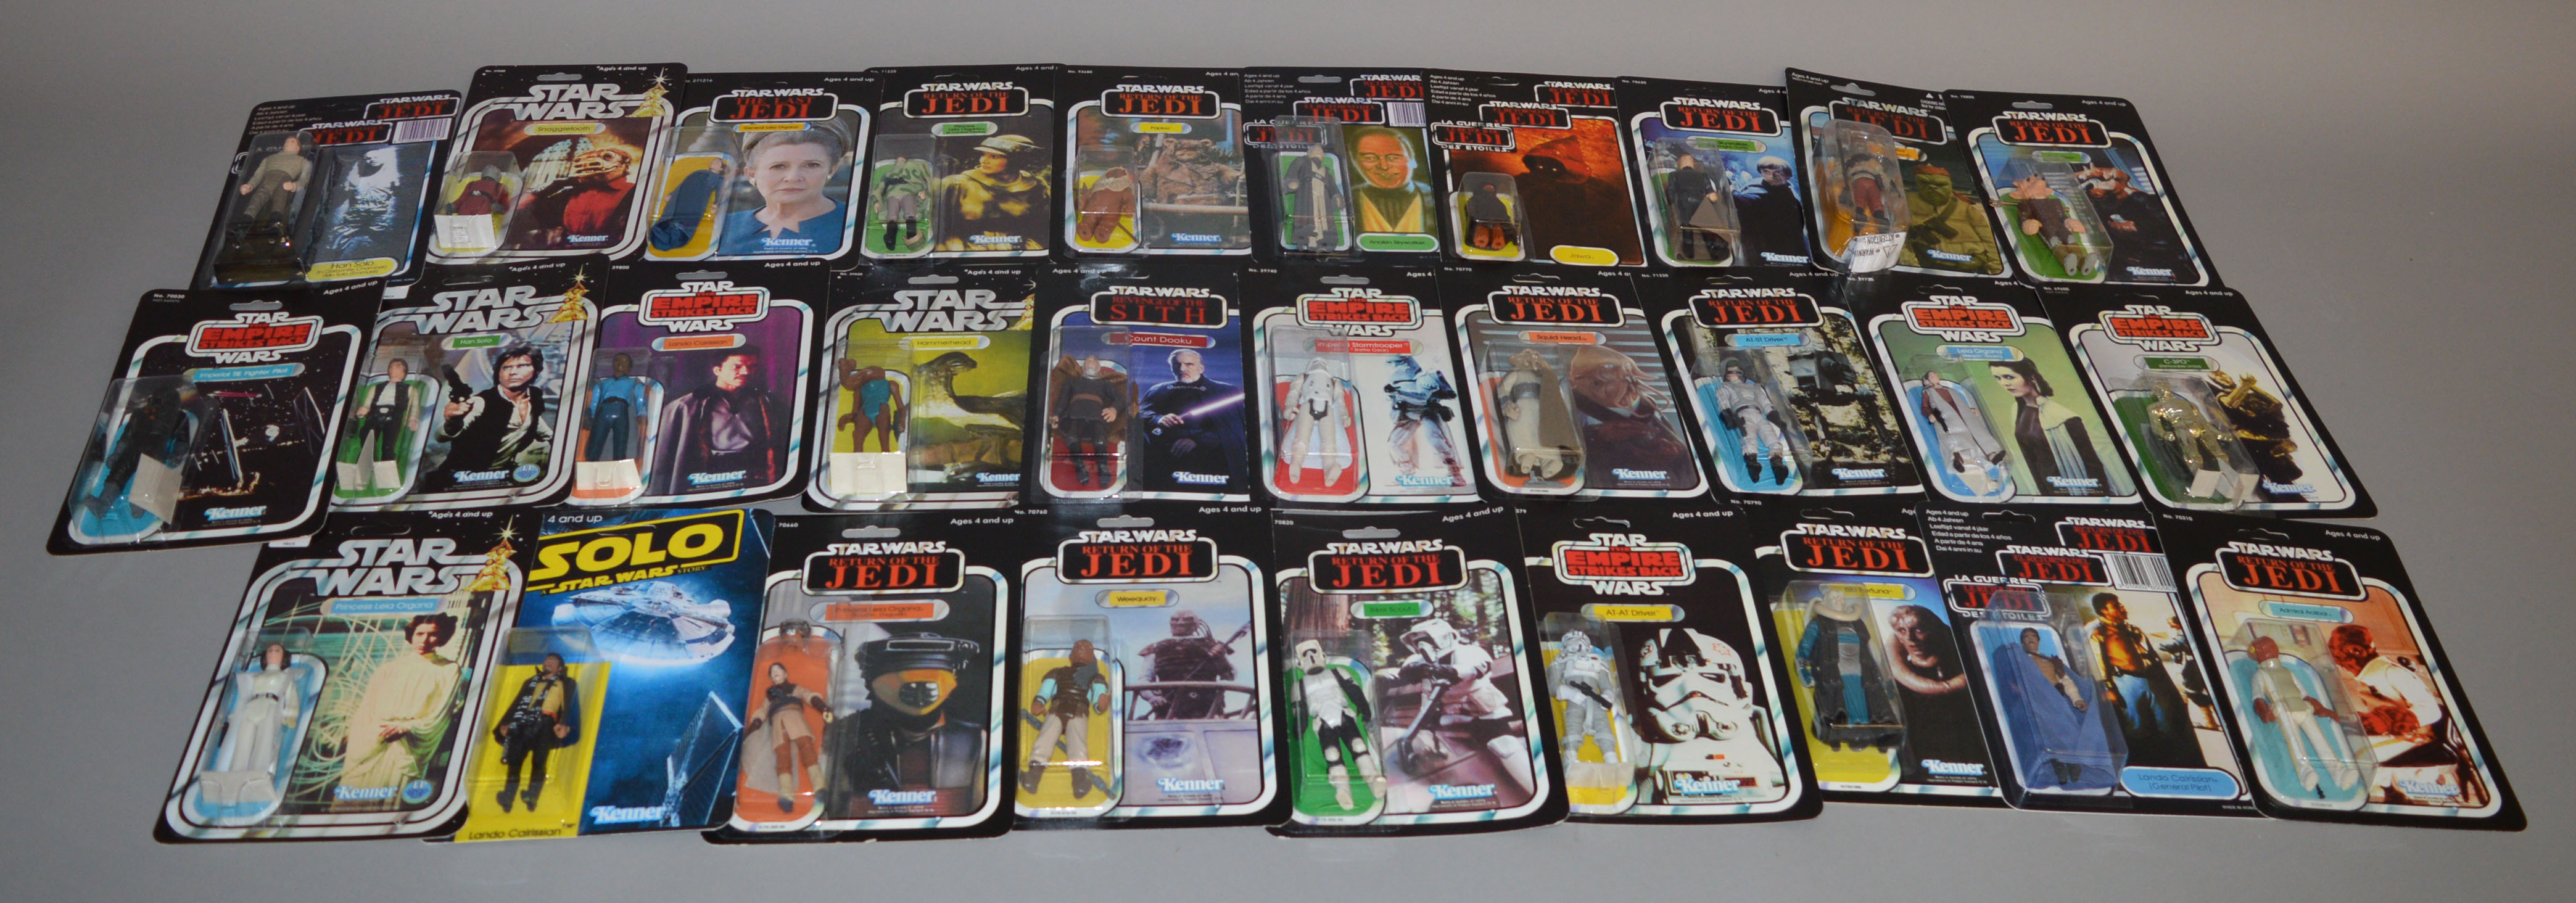 Lot 3 - Thirty two Star Wars figures by Kenner on reproduction cards,